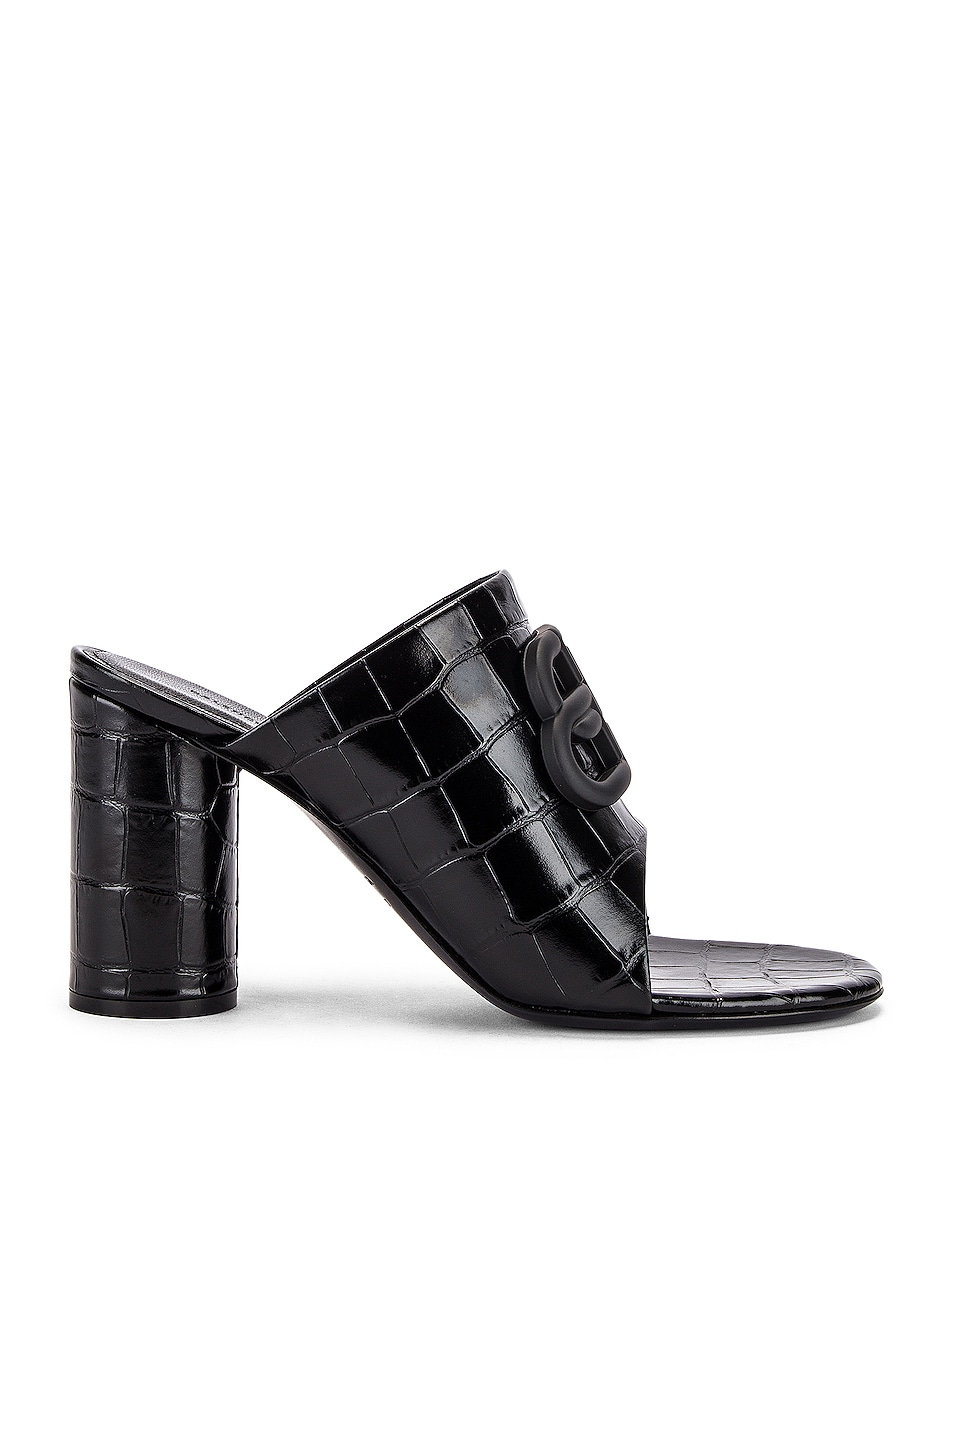 Image 2 of Balenciaga Croc Oval BB Sandals in Black & Black